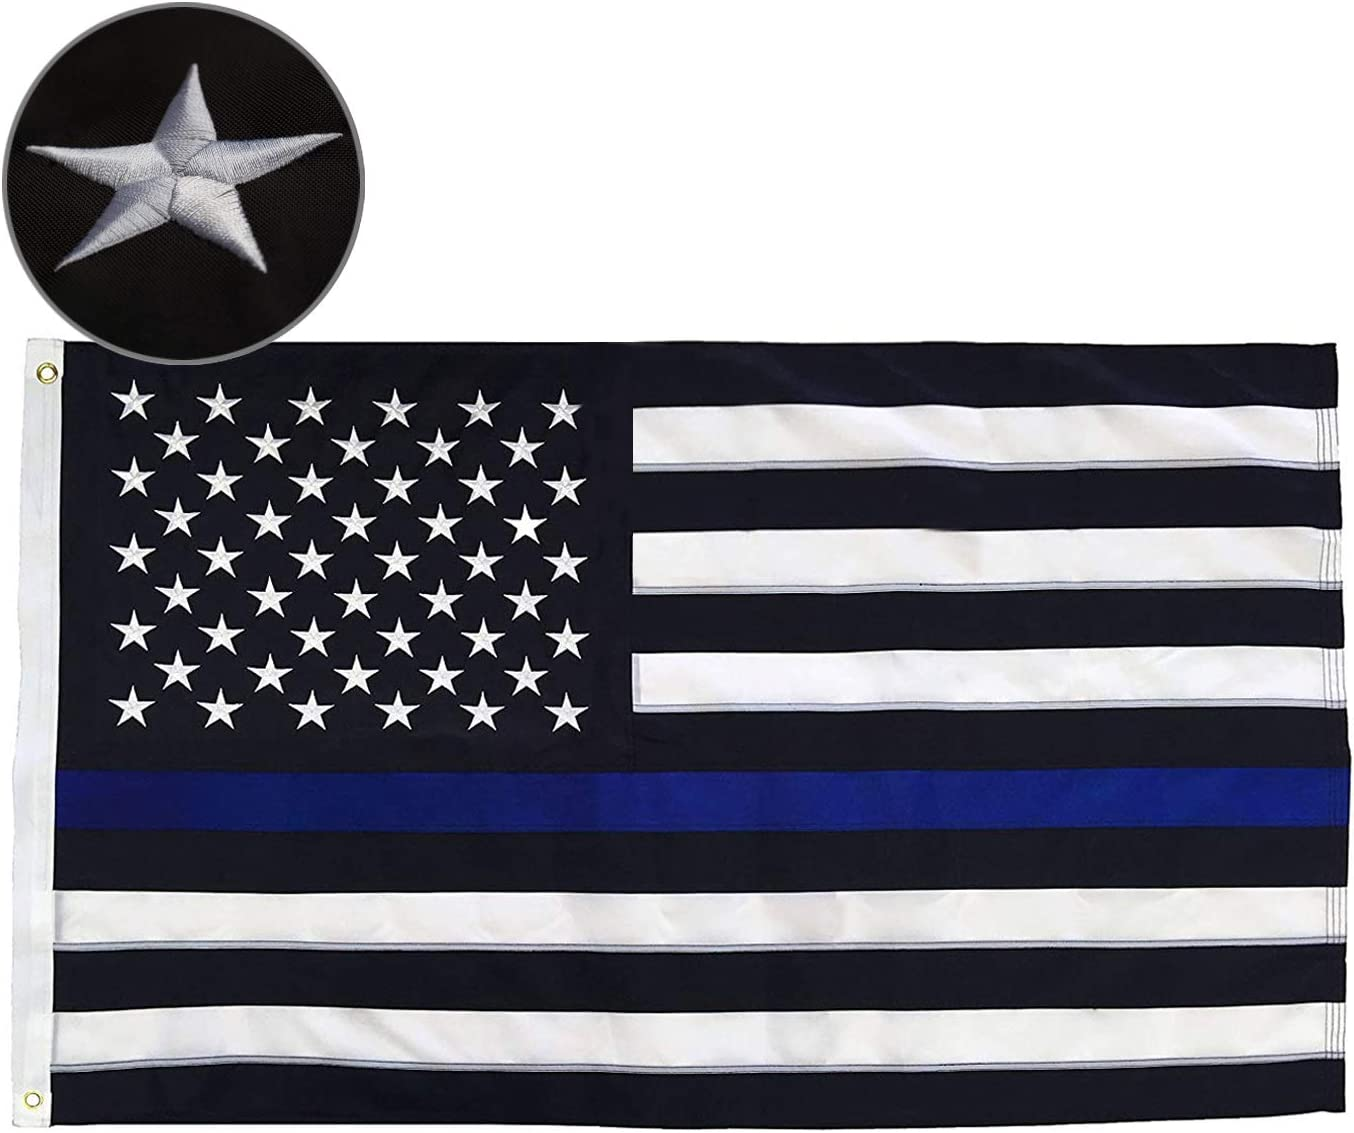 Thin Max 69% OFF Blue Line American Flag a Durable Embroidered Stars Cheap super special price Deluxe